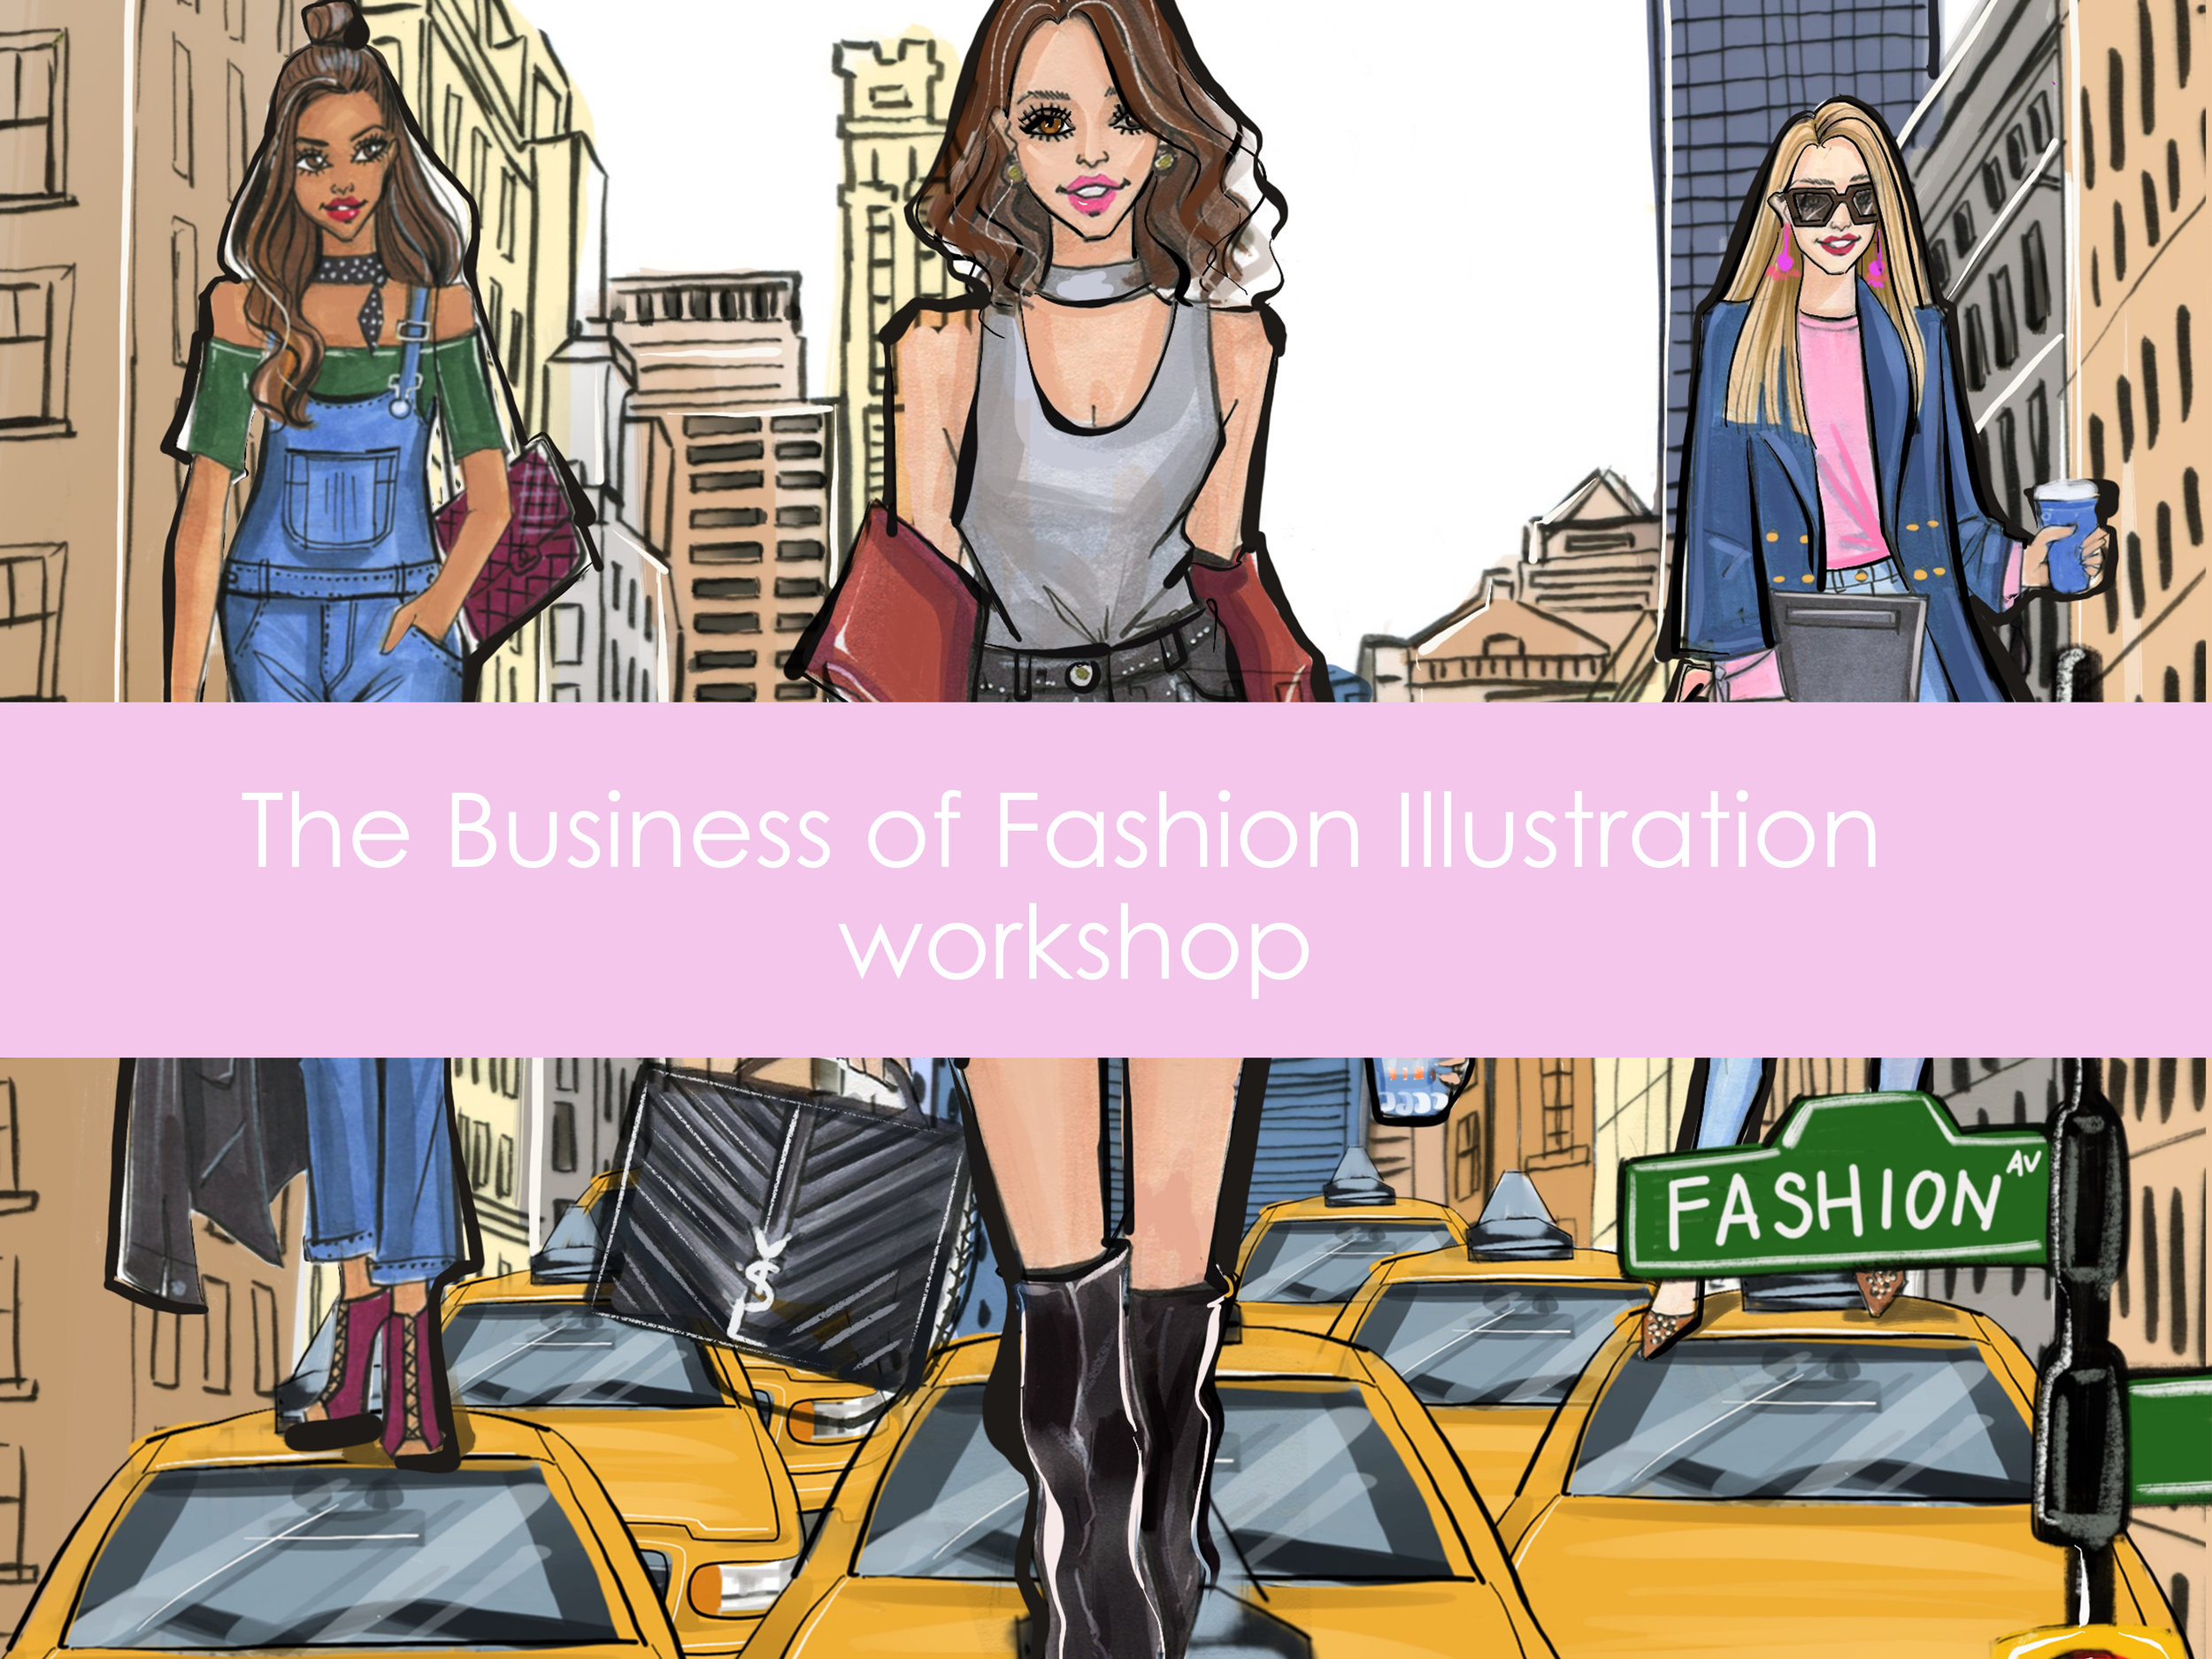 Biz of fashion illustration cover page.JPG